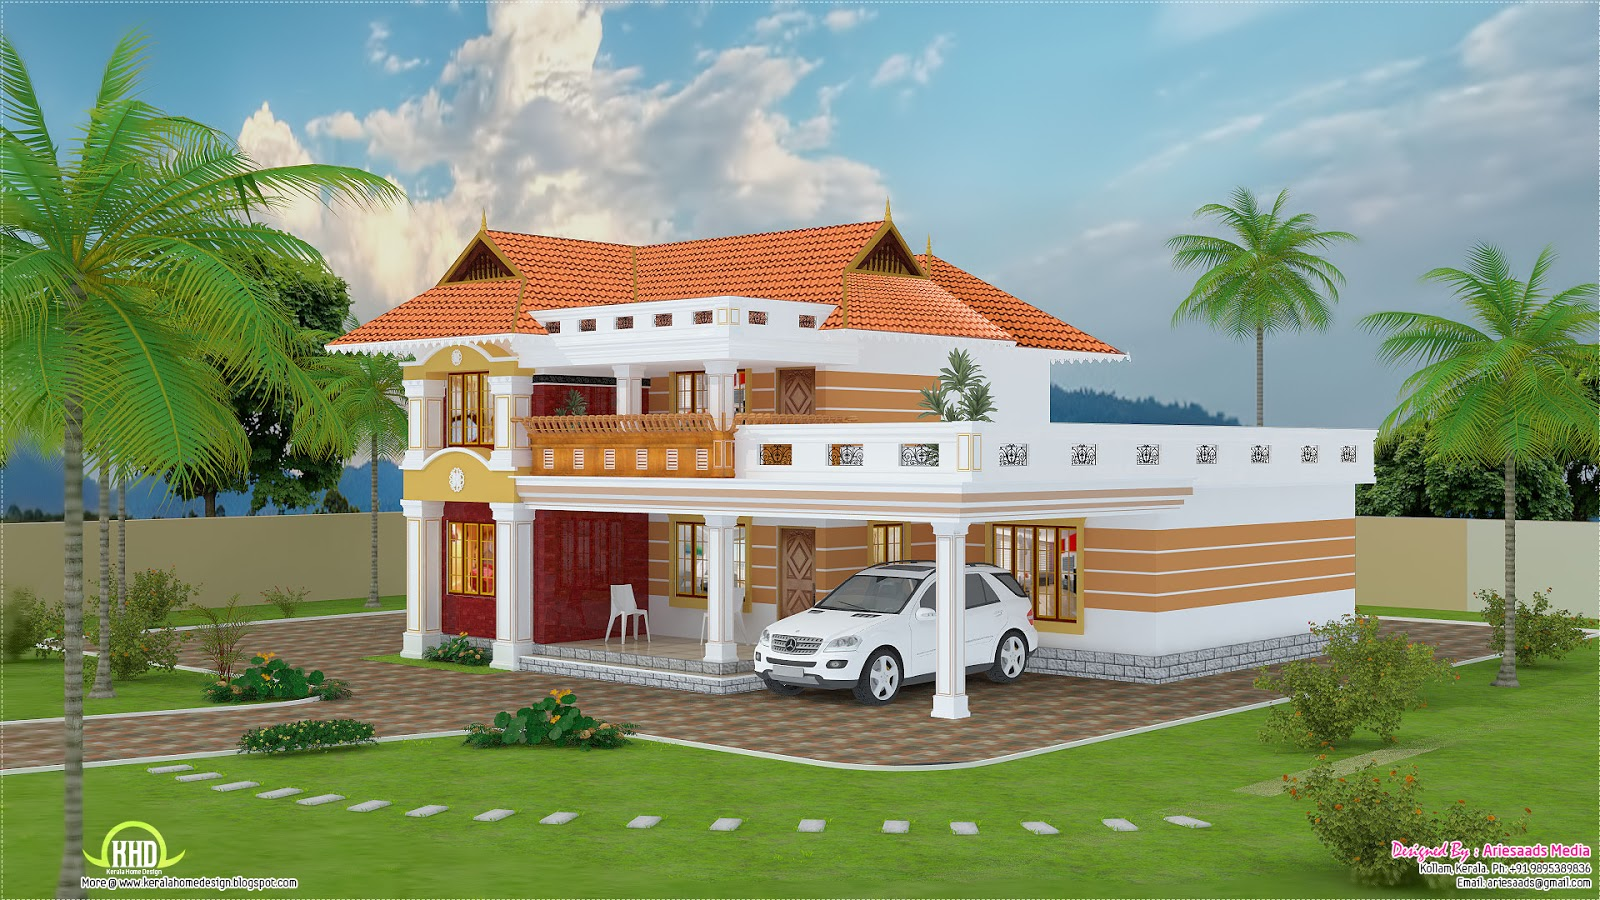 ... sq.feet beautiful villa design - Kerala home design and floor plans